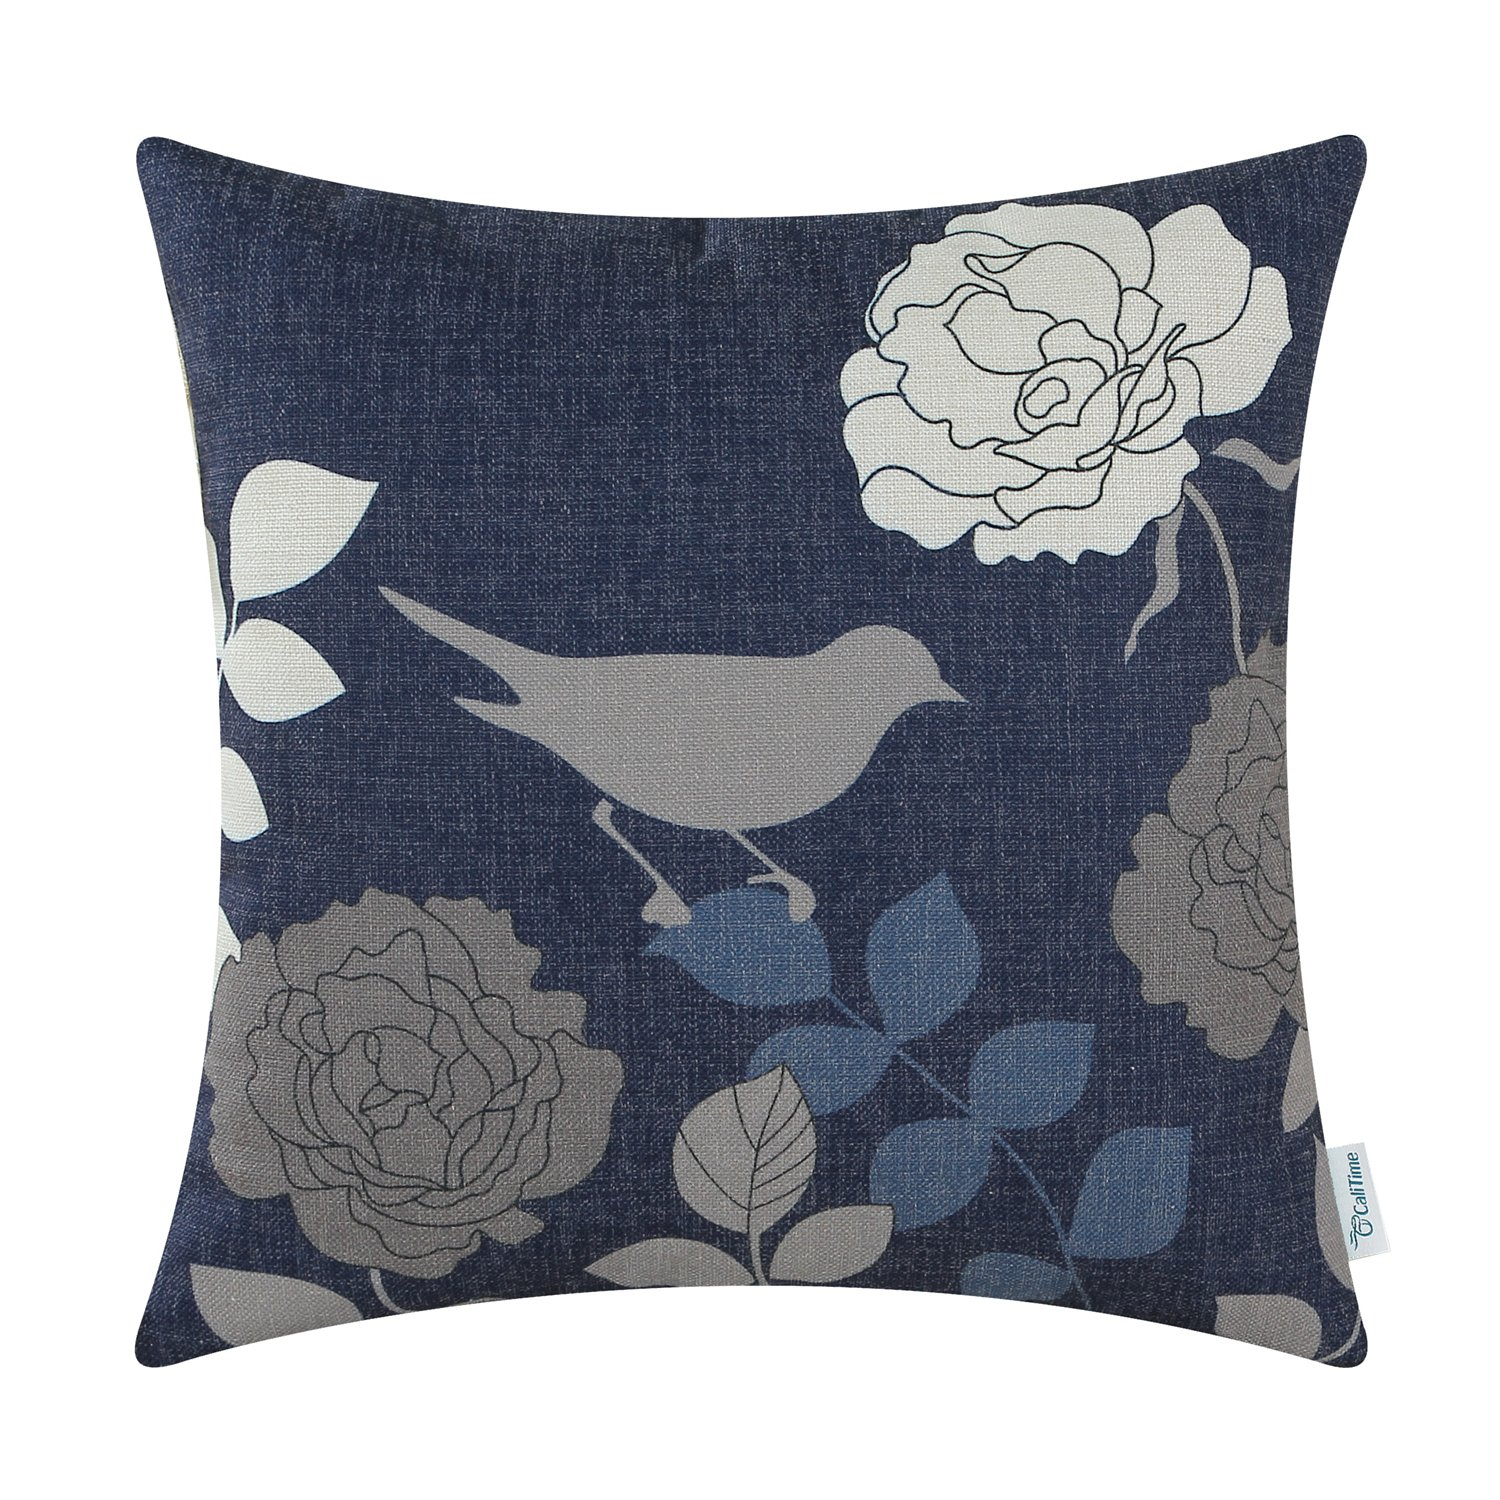 CaliTime Canvas Throw Pillow Cover Case for Couch Sofa Home Decoration Floral Cartoon Shadow Bird Silhouette 18 X 18 inches Navy Ground Grey Bird